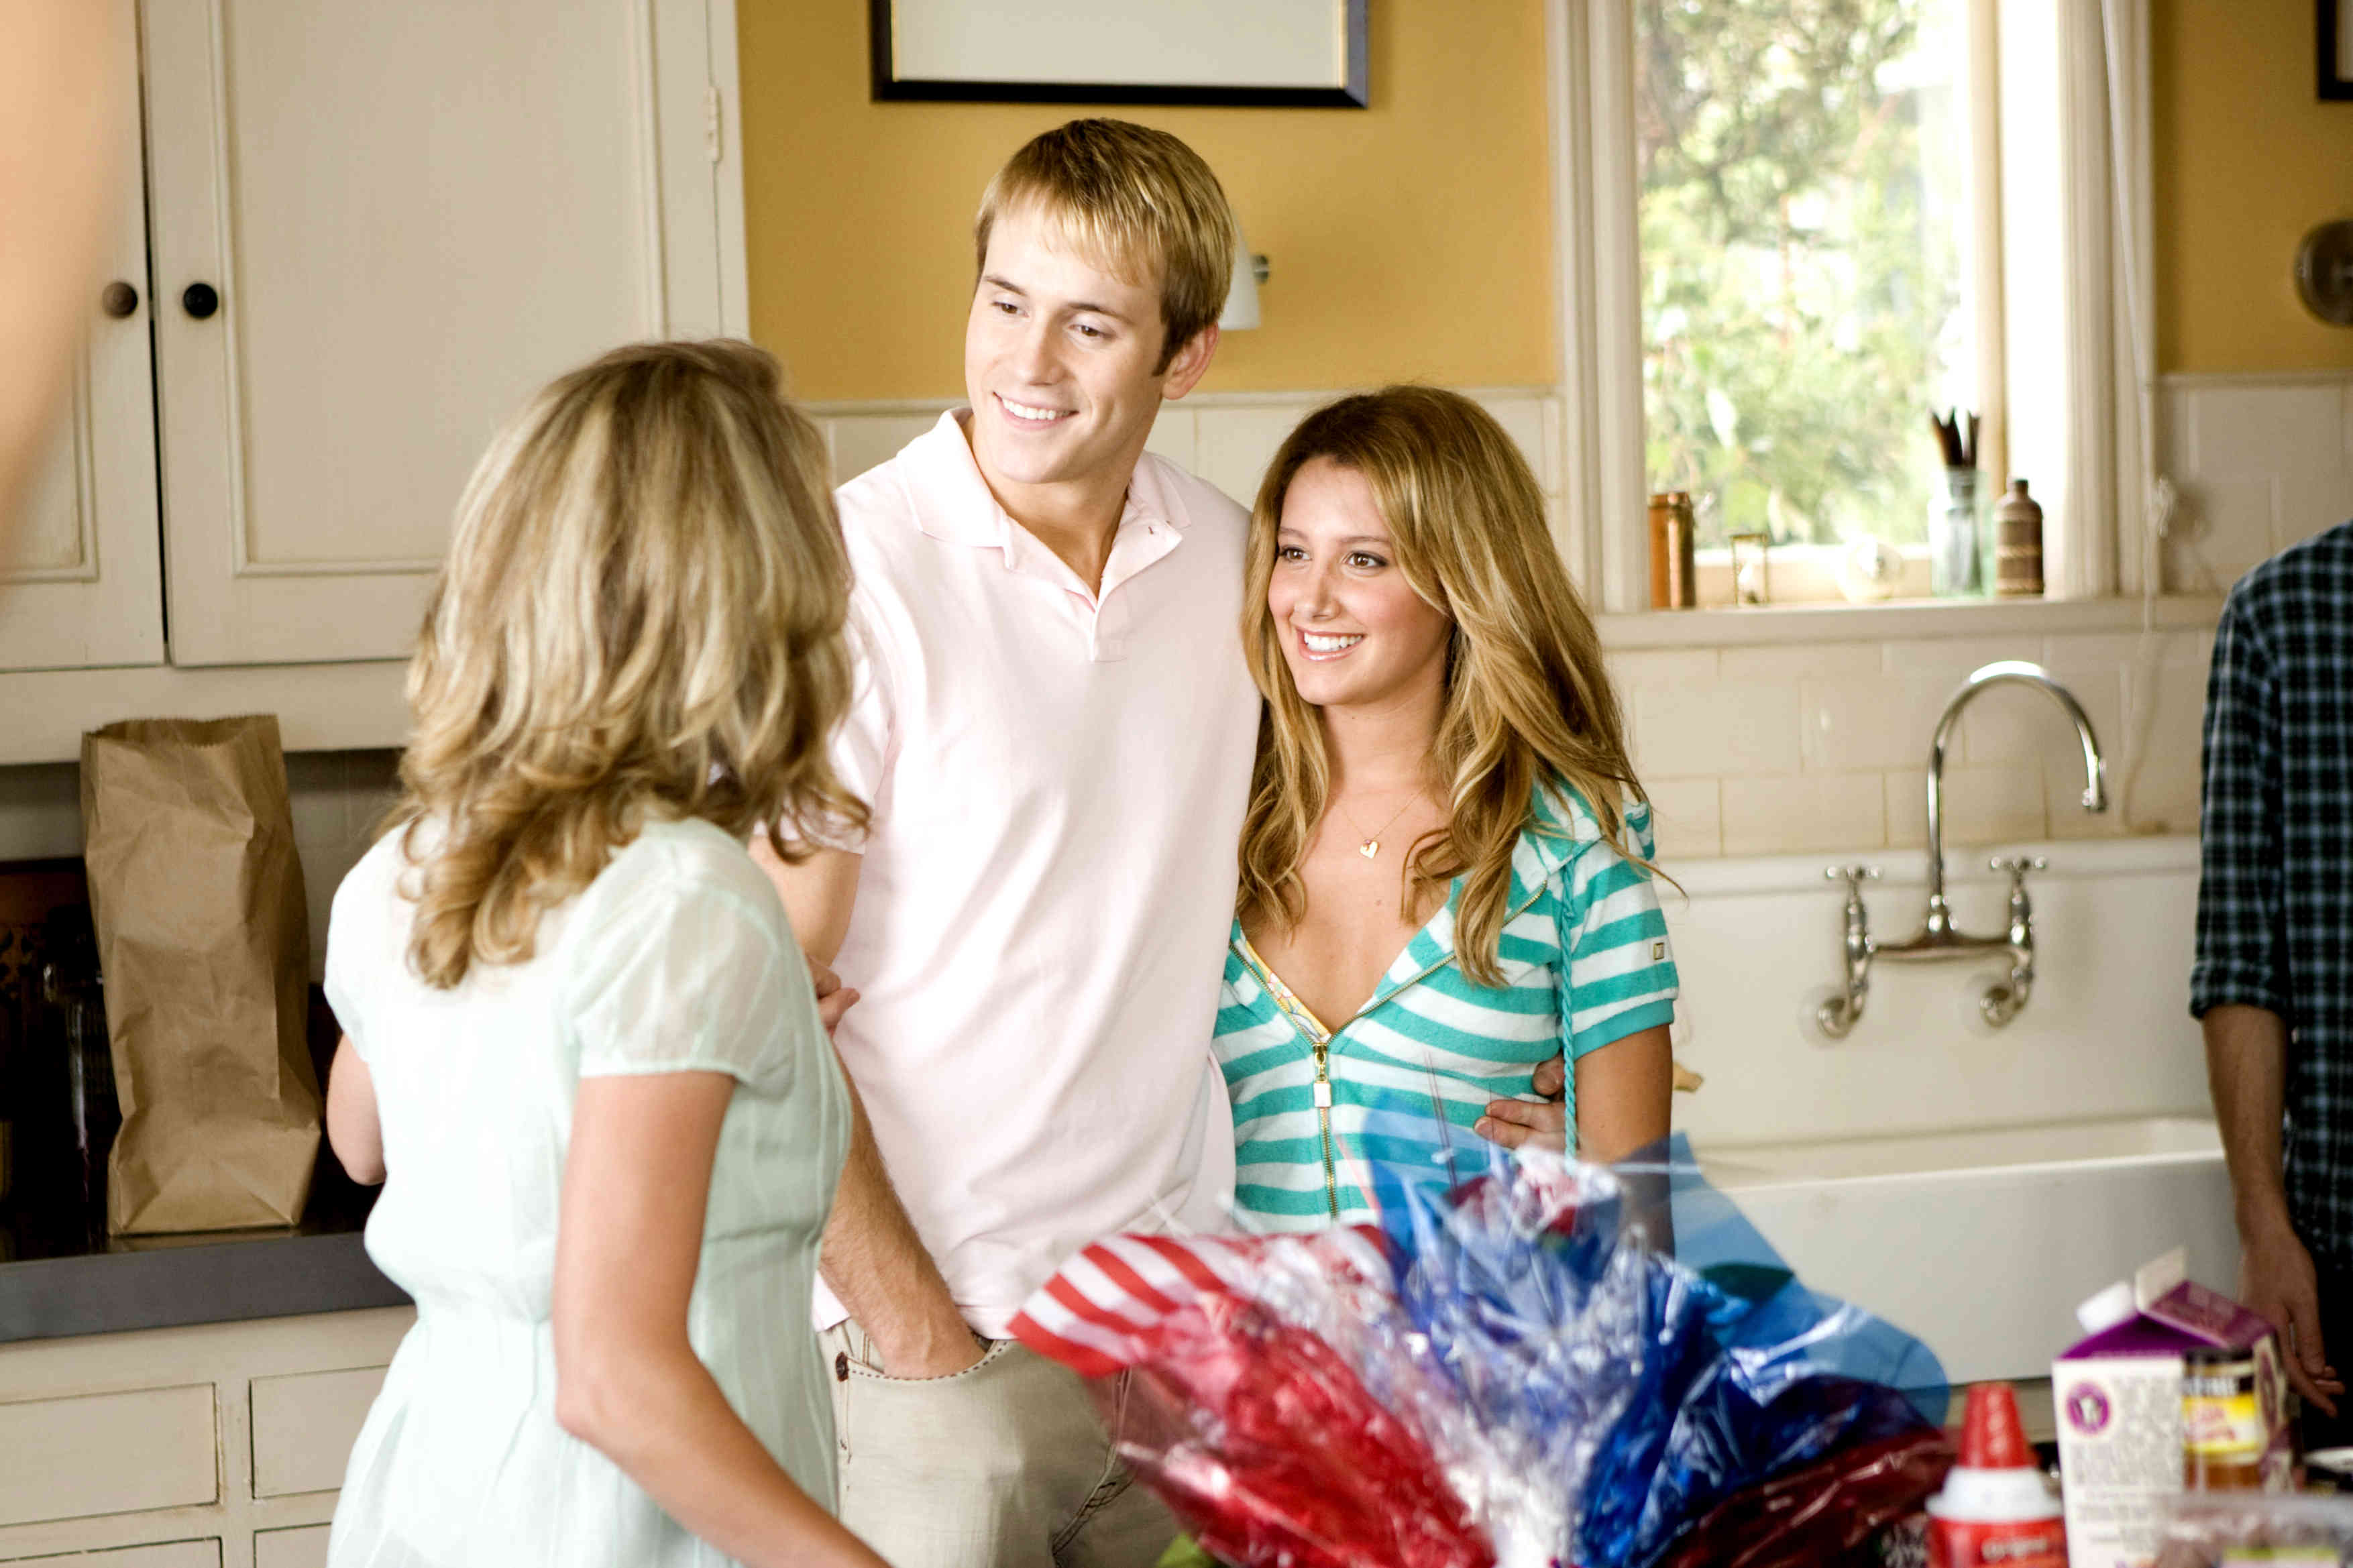 Robert Hoffman stars as Ricky and Ashley Tisdale stars as Bethany Pearson in The 20th Century  sc 1 st  AceShowbiz.com & Aliens in the Attic Picture 3